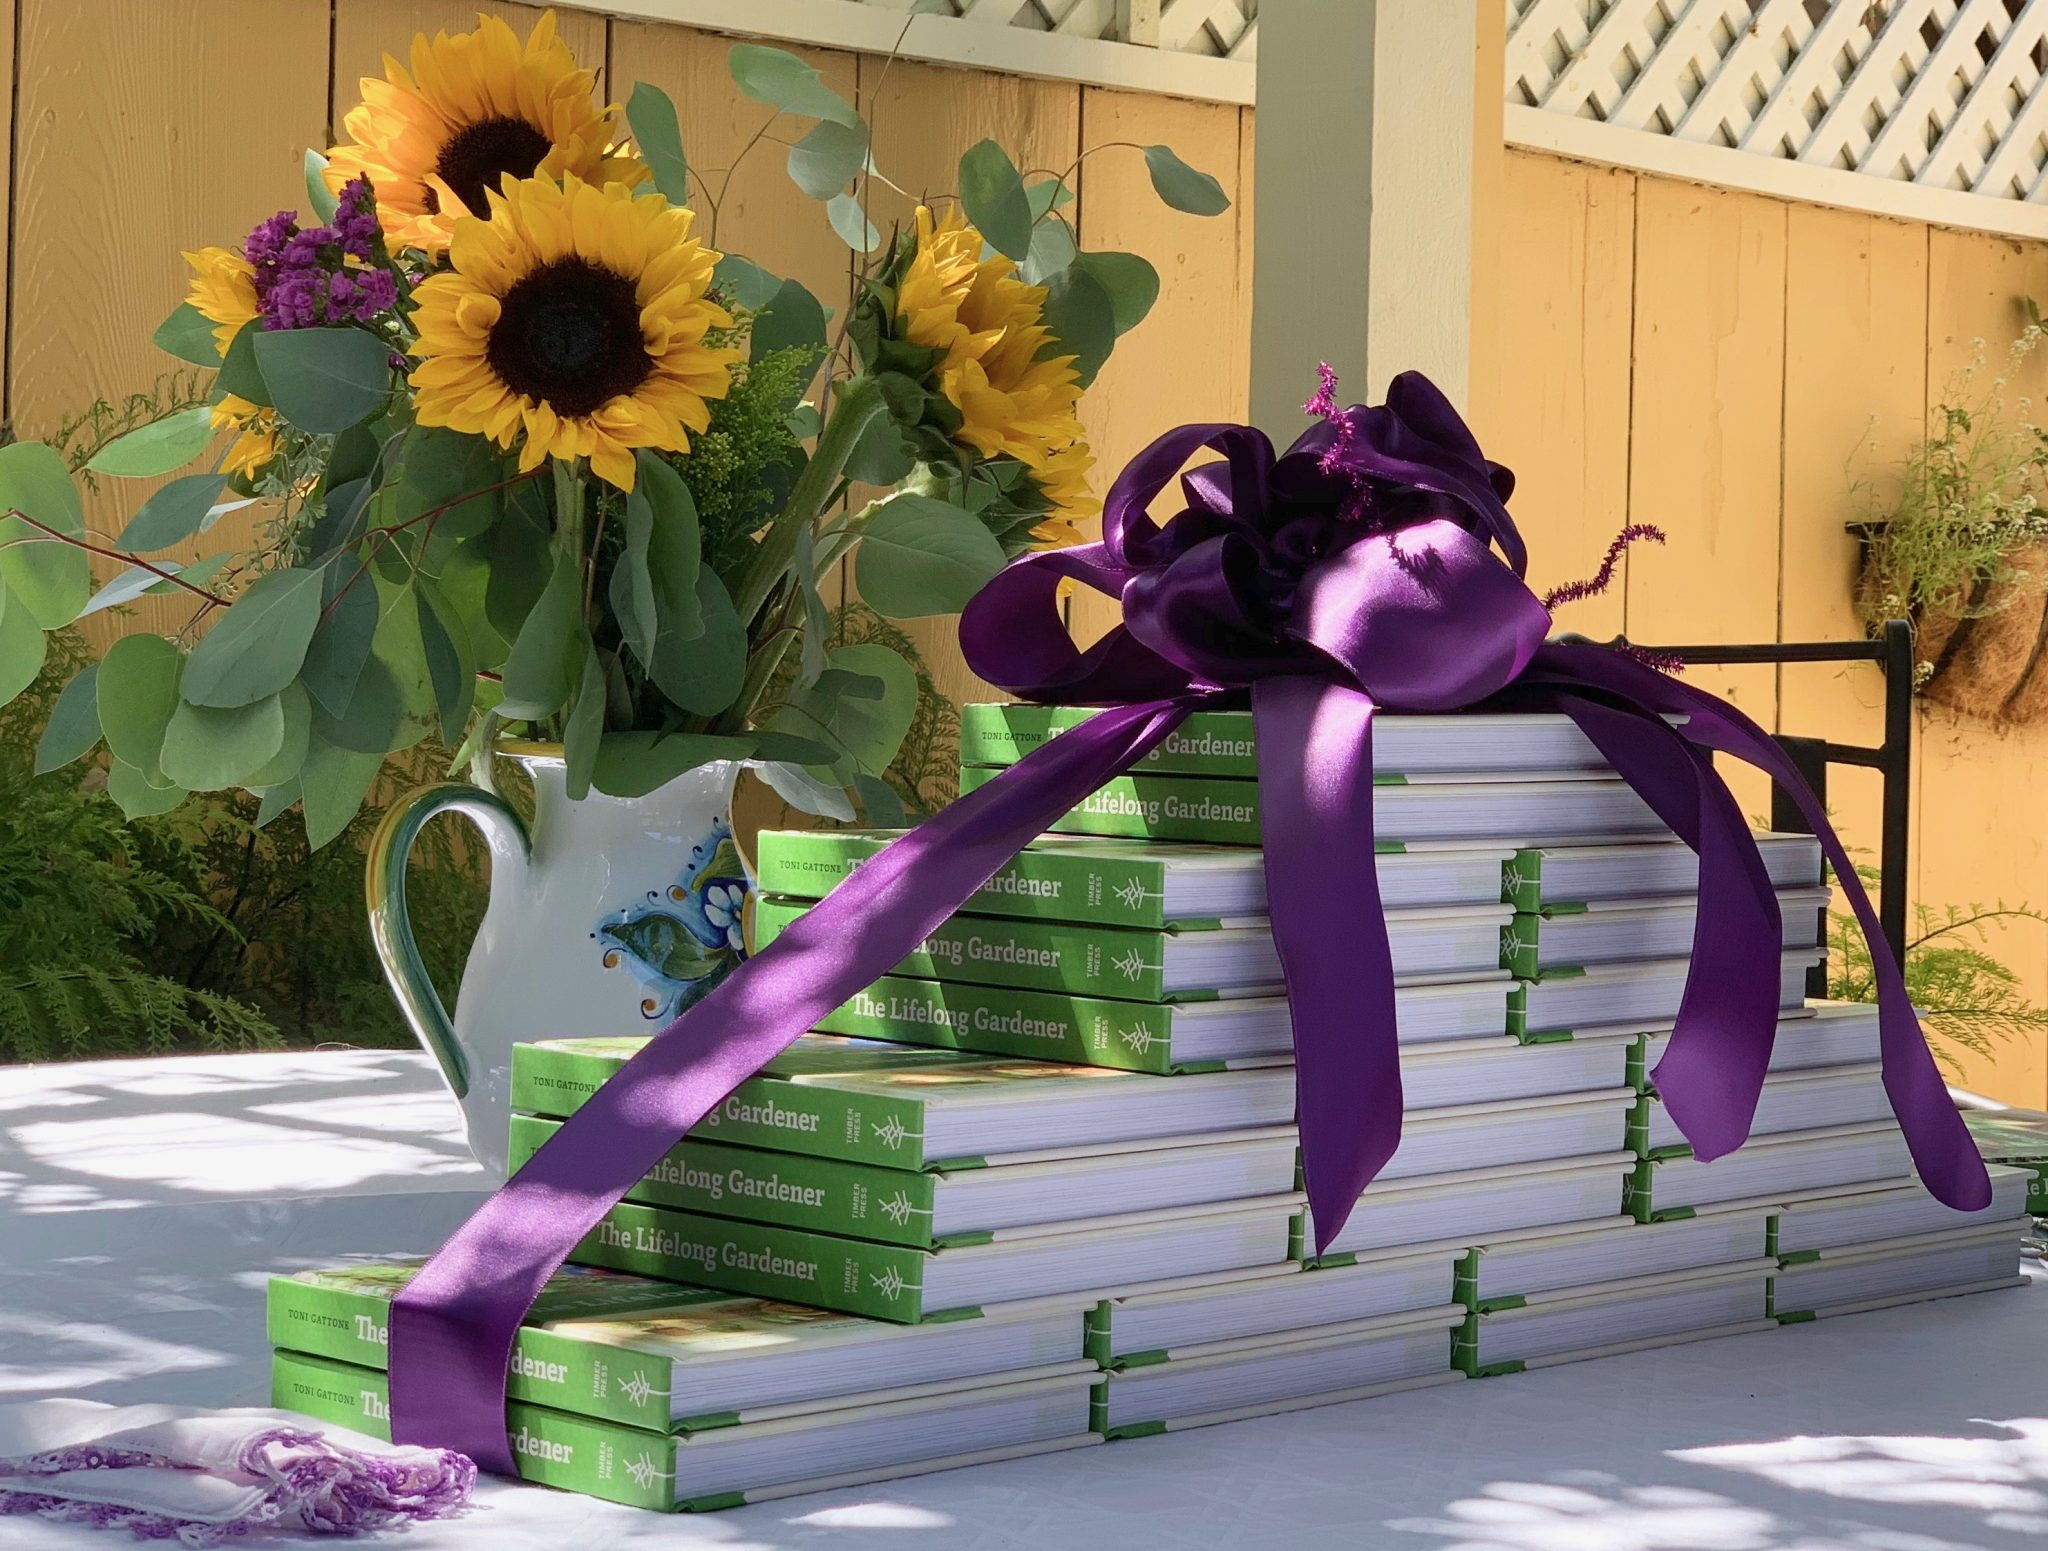 Book Launch Event for Toni Gattone's Book: 'The Lifelong Gardener' and Ribbon Cutting For ToniGattone.com